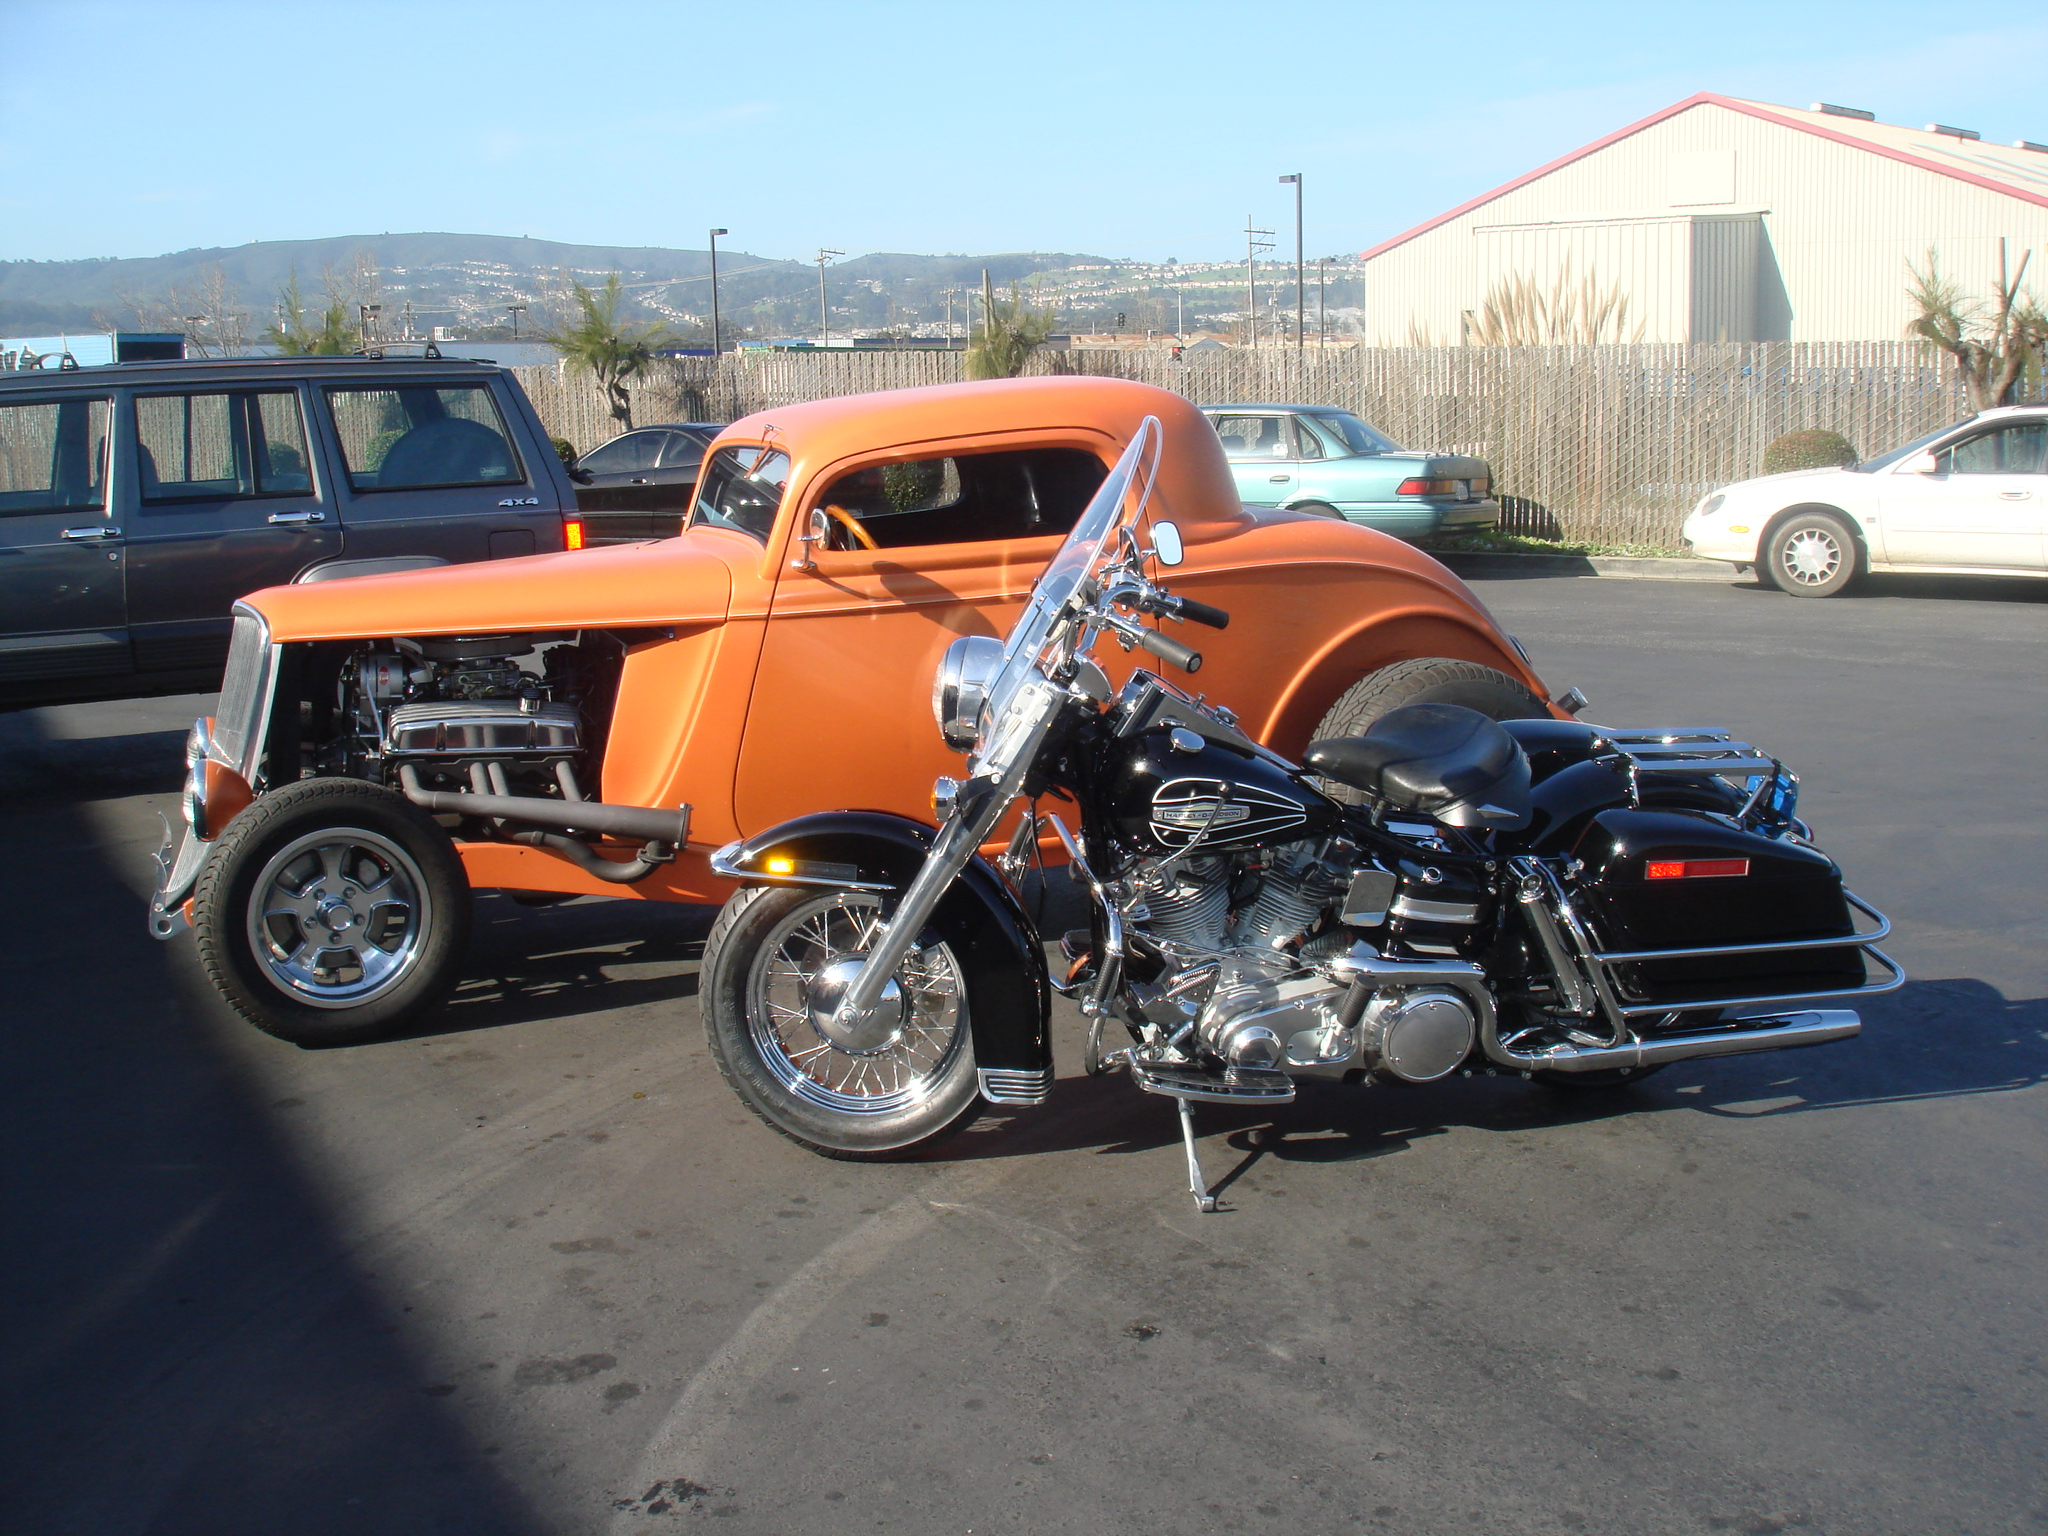 1932 Ford Coupe, 1971 HD FLH